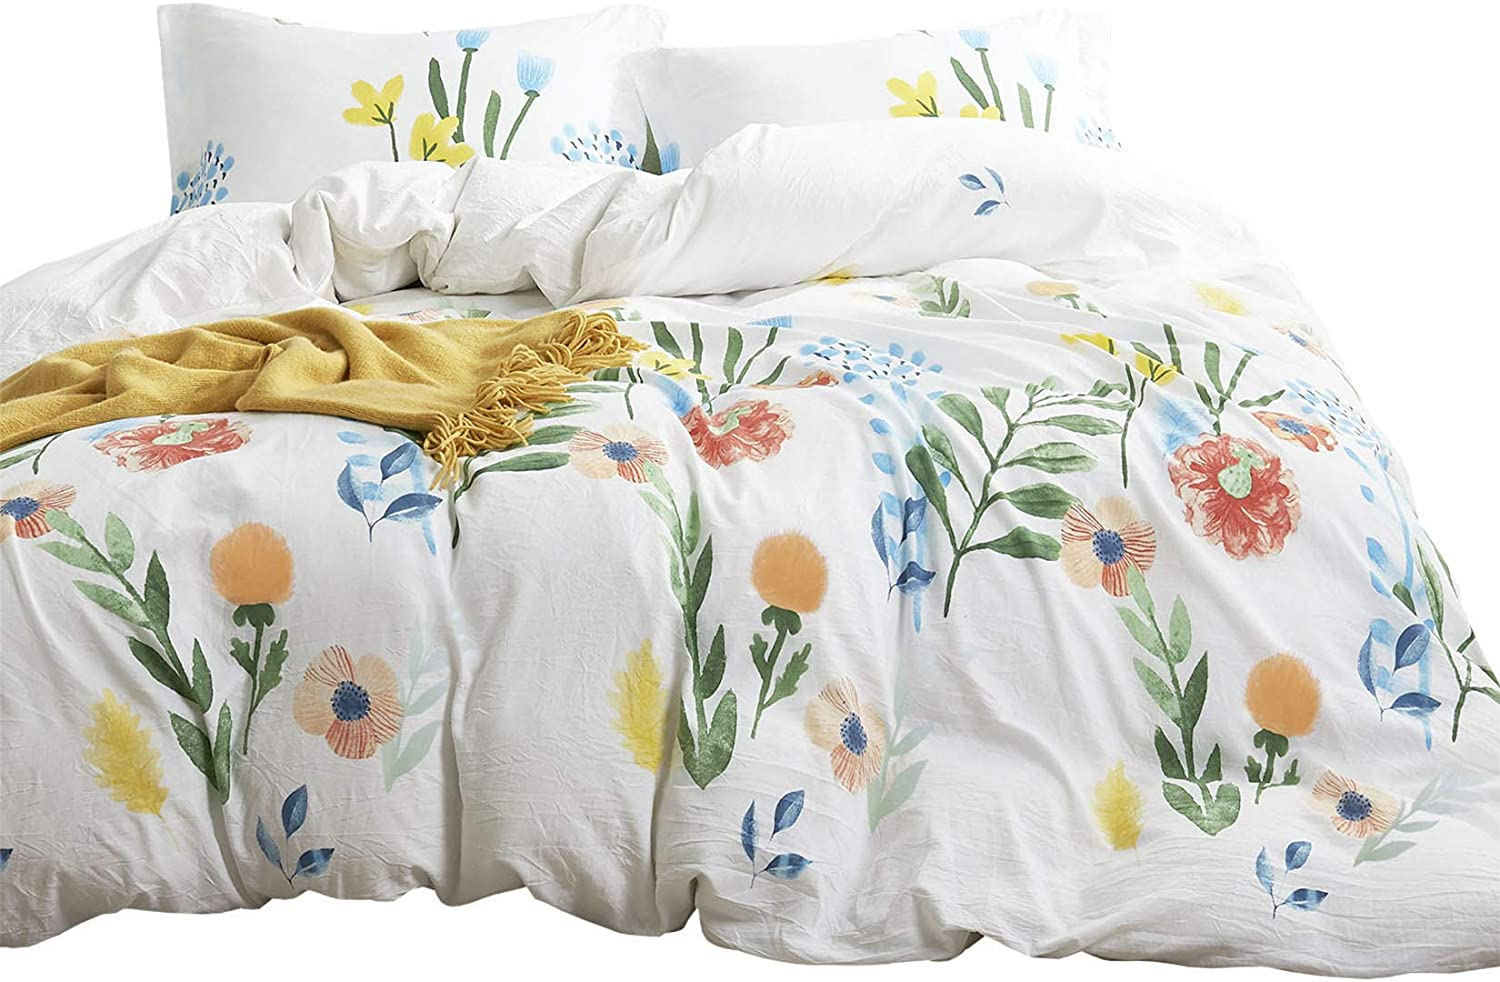 Wake In Cloud - Watercolor Comforter Set, Colorful Floral Leaves Flowers Painting Pattern Printed, 100% Cotton Fabric with Soft Microfiber Inner Fill Bedding (3pcs, Full Size)